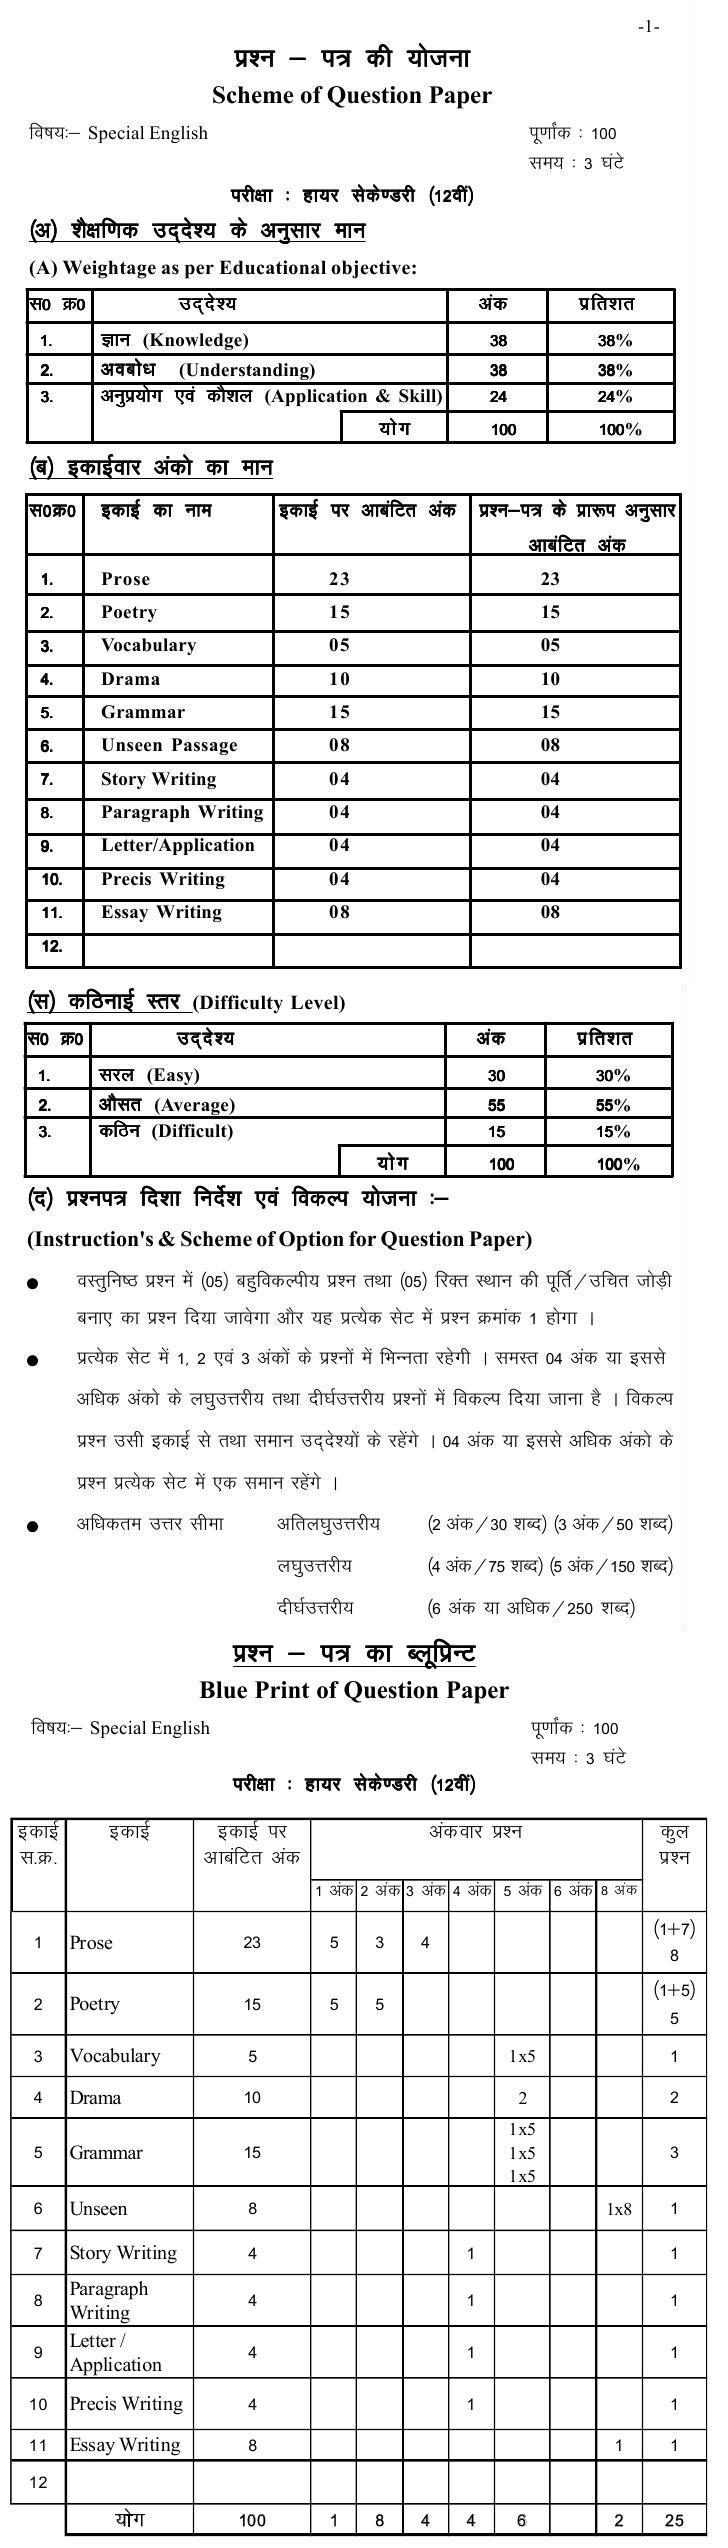 Chattisgarh Board Class 12 Scheme and Blue Print of English Special